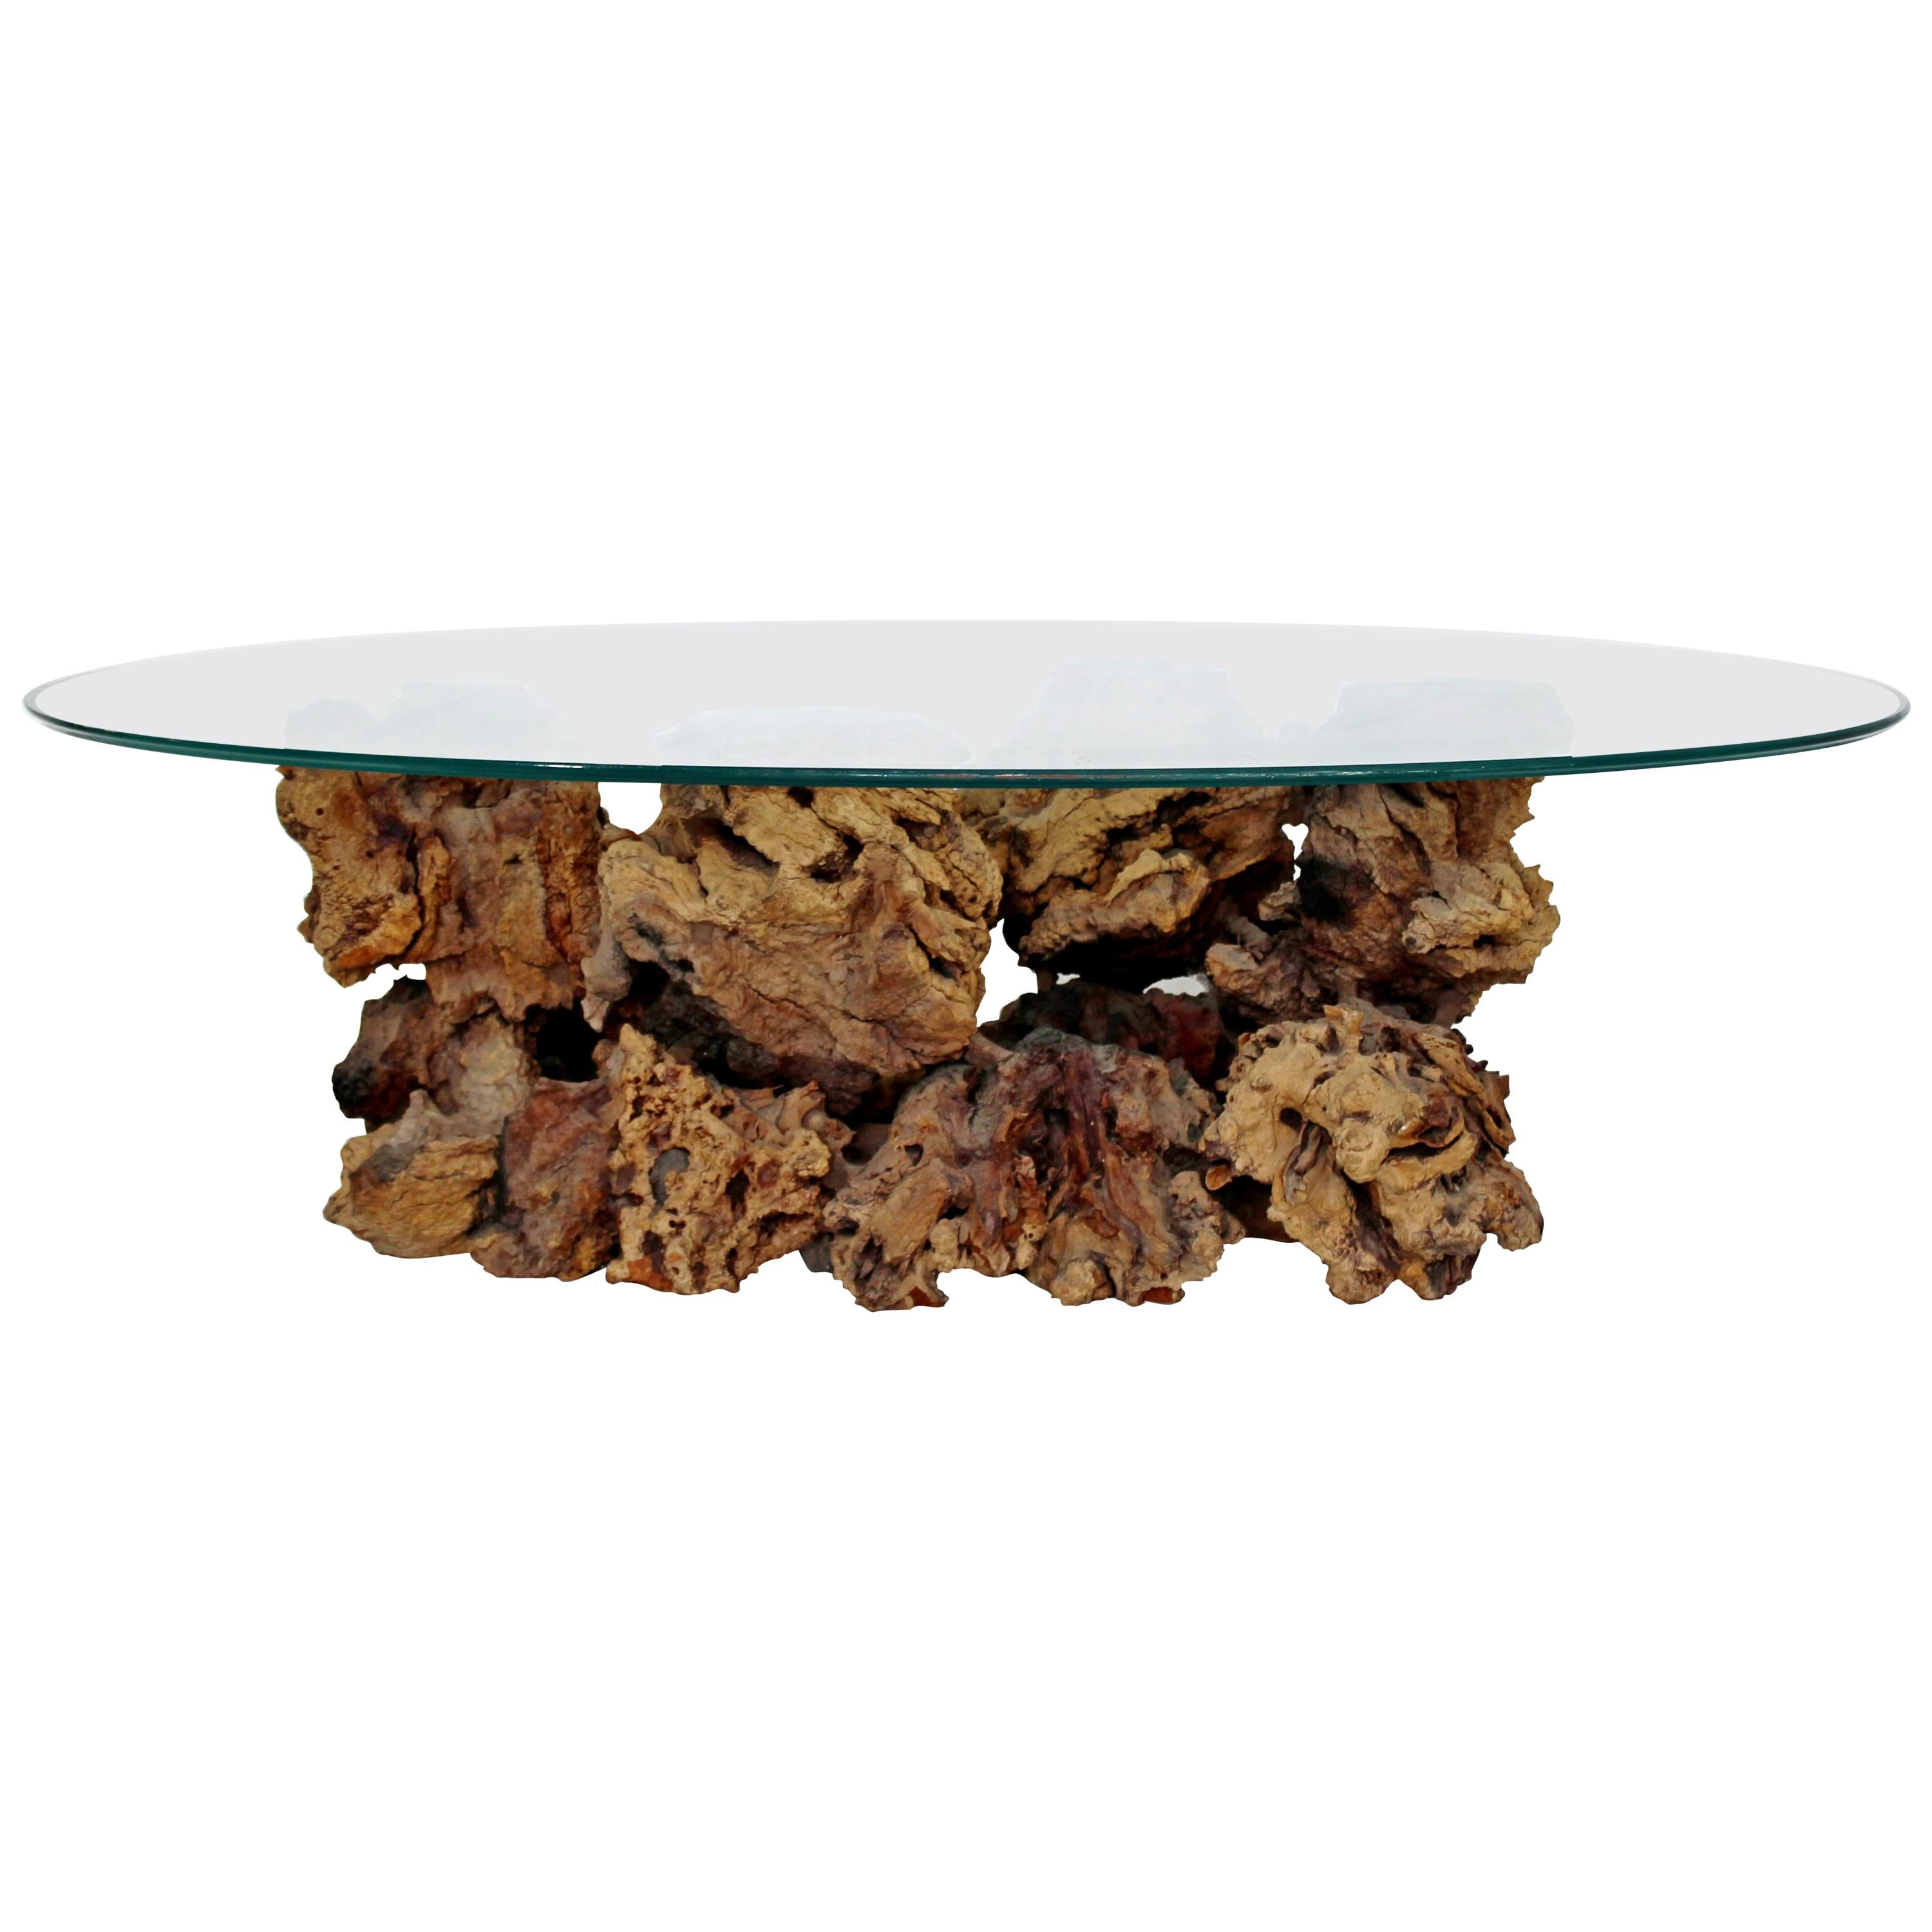 Charmant Mid Century Modern Sculptural Burl Wood Driftwood Tree Trunk Coffee Table,  1960s For Sale